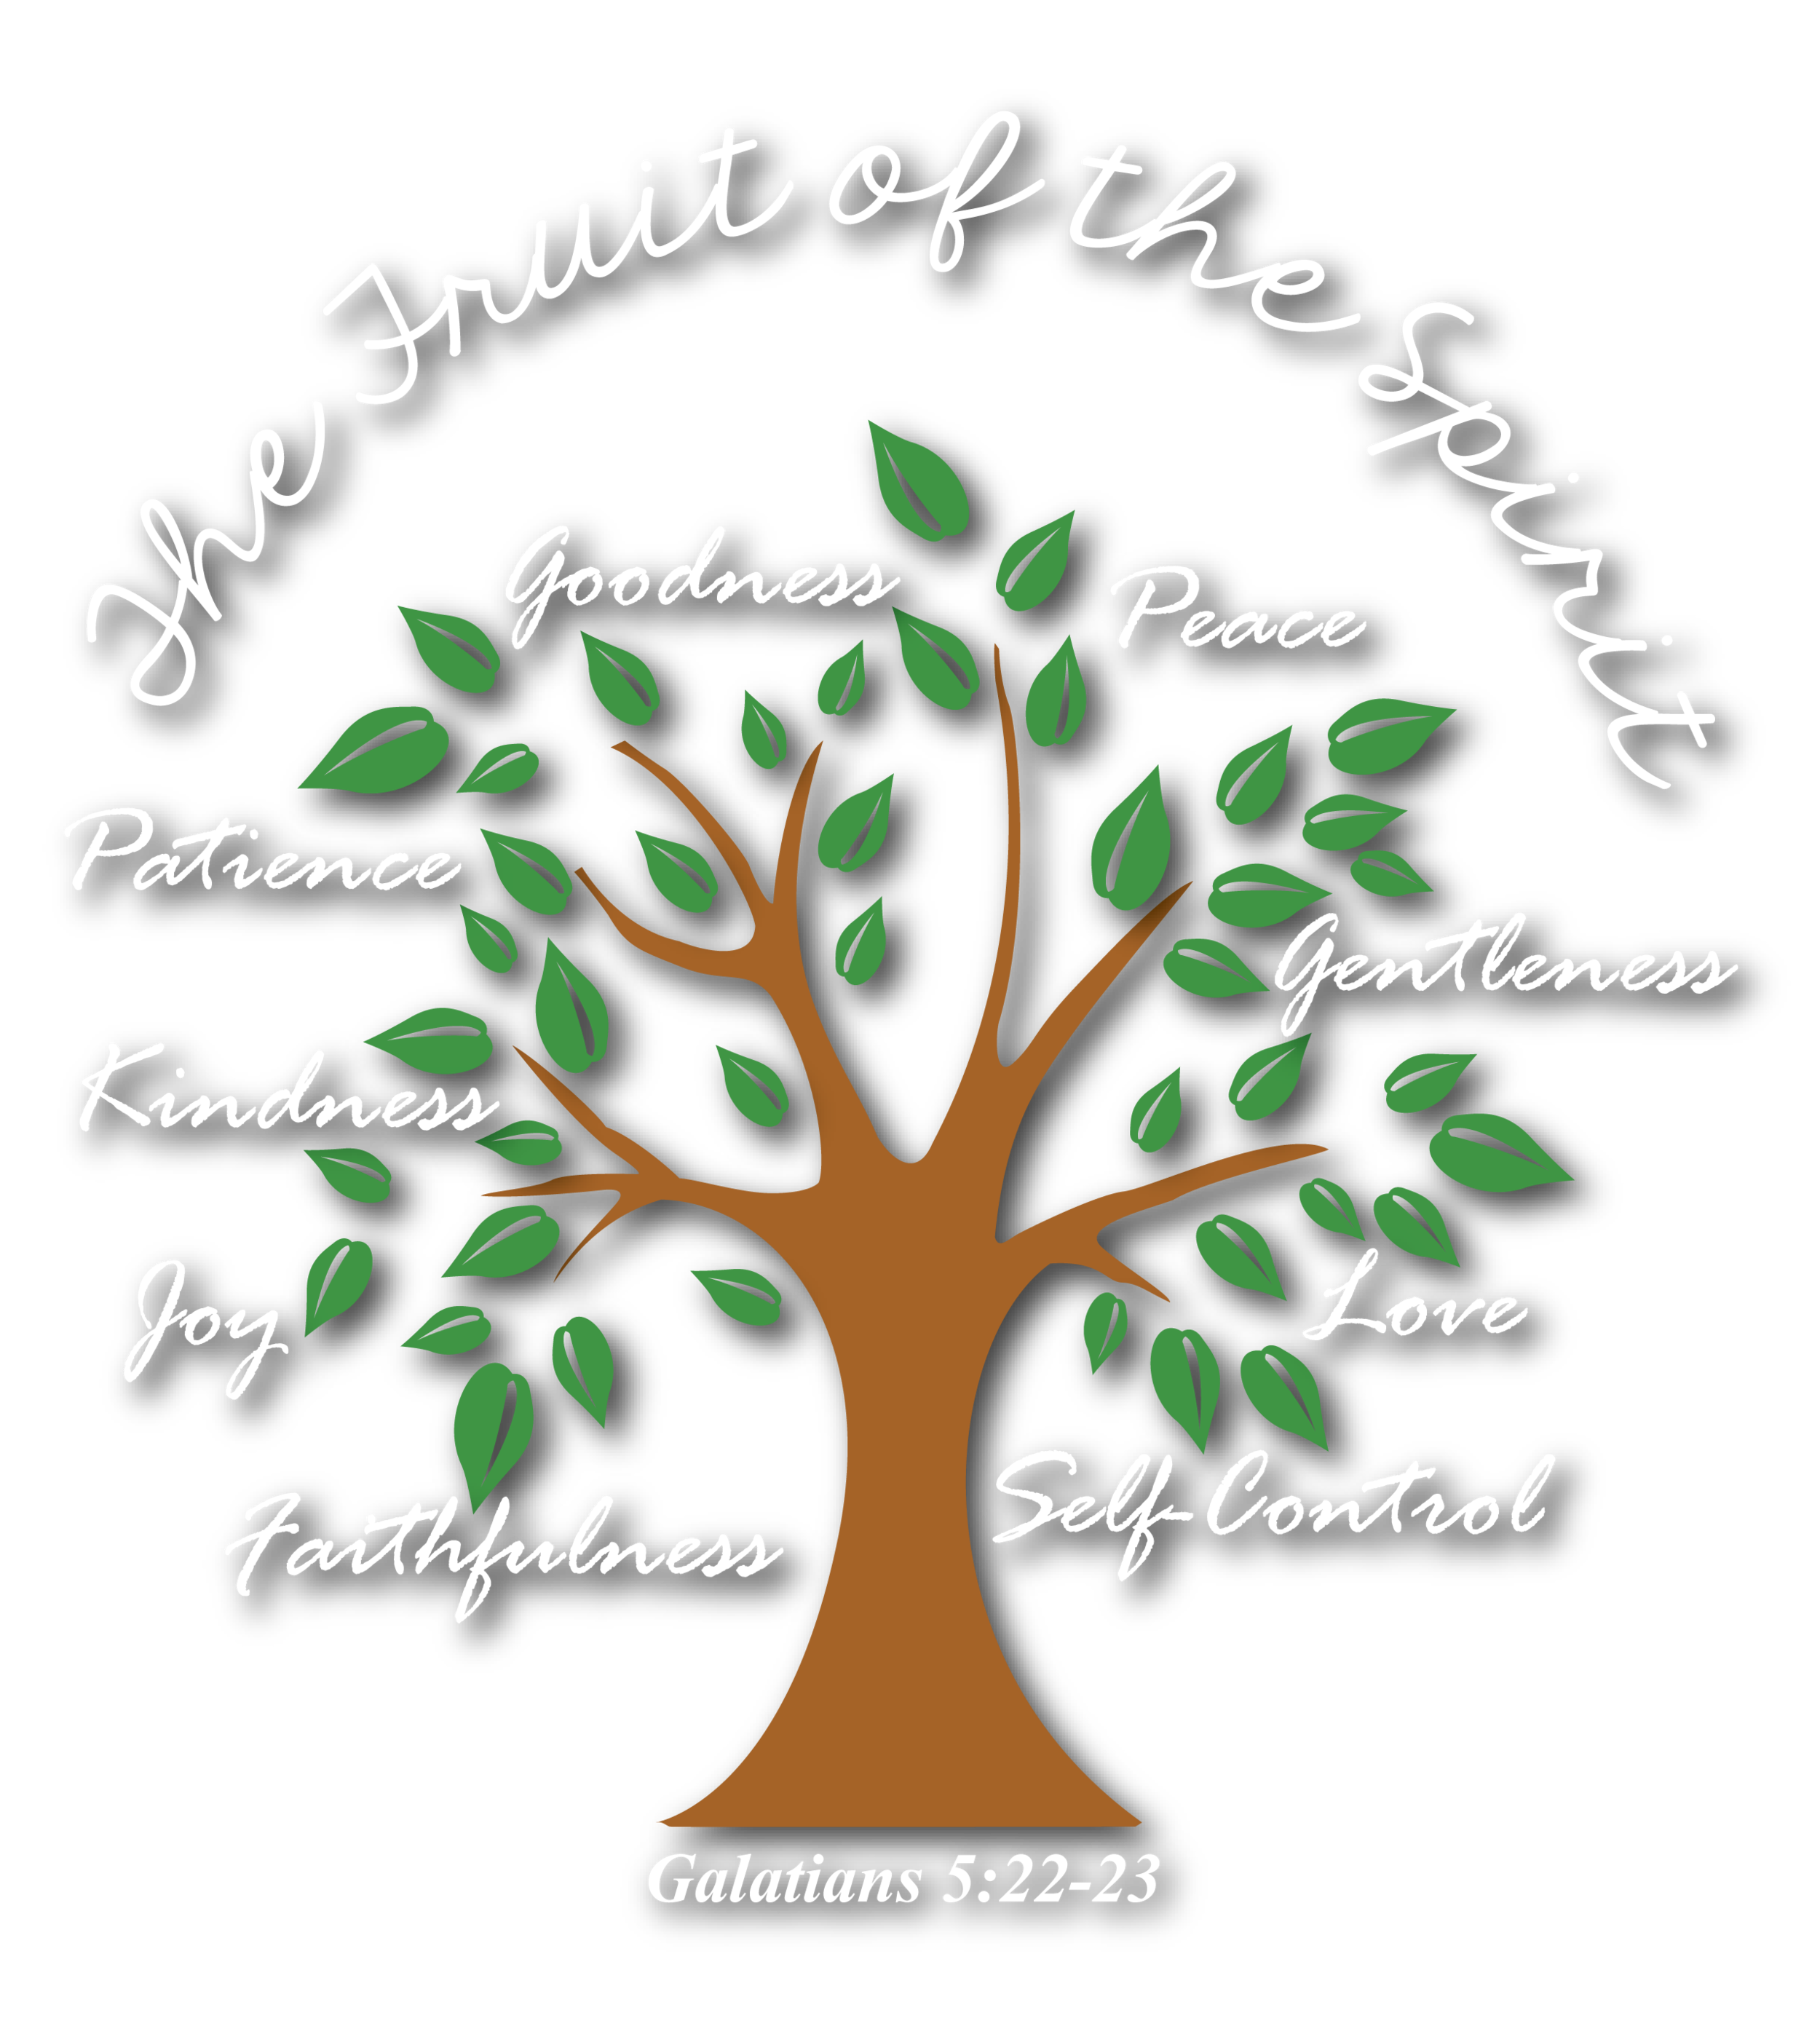 """Fruit of the Spirit"" - This character education framework was designed by EDS teachers. Using Galatians 5: 22-23 as a guide, teachers developed and gathered ideas for promoting a different Fruit of the Spirit each month (love, joy, peace, patience, kindness, goodness, gentleness, faithfulness, and self-control) in classrooms, in Tuesday and Thursday chapel services, and throughout the school. This program is woven throughout the EDS curriculum."